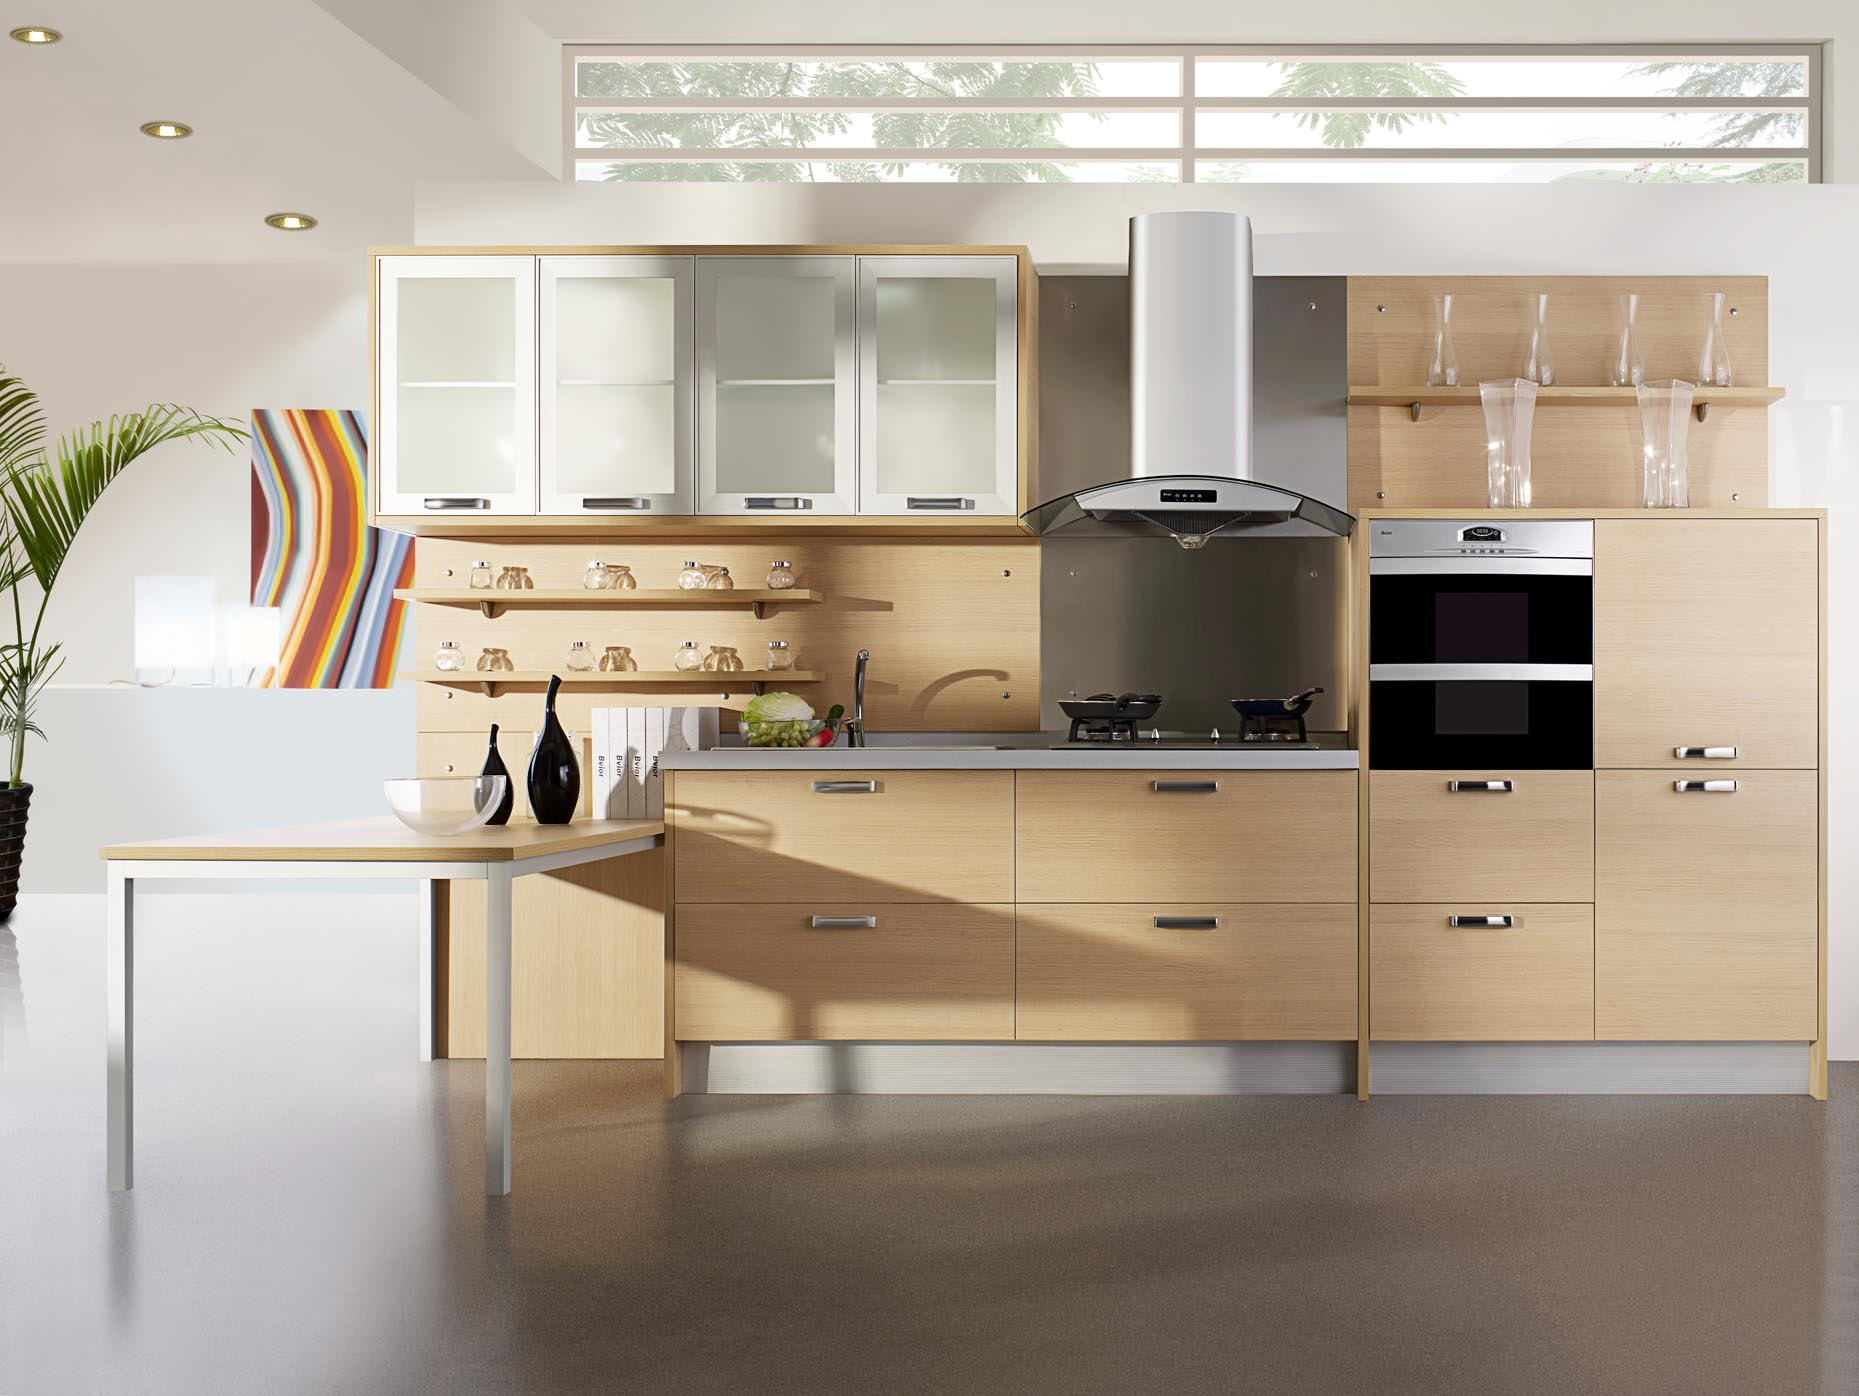 cabinet designs for small kitchens photo - 2